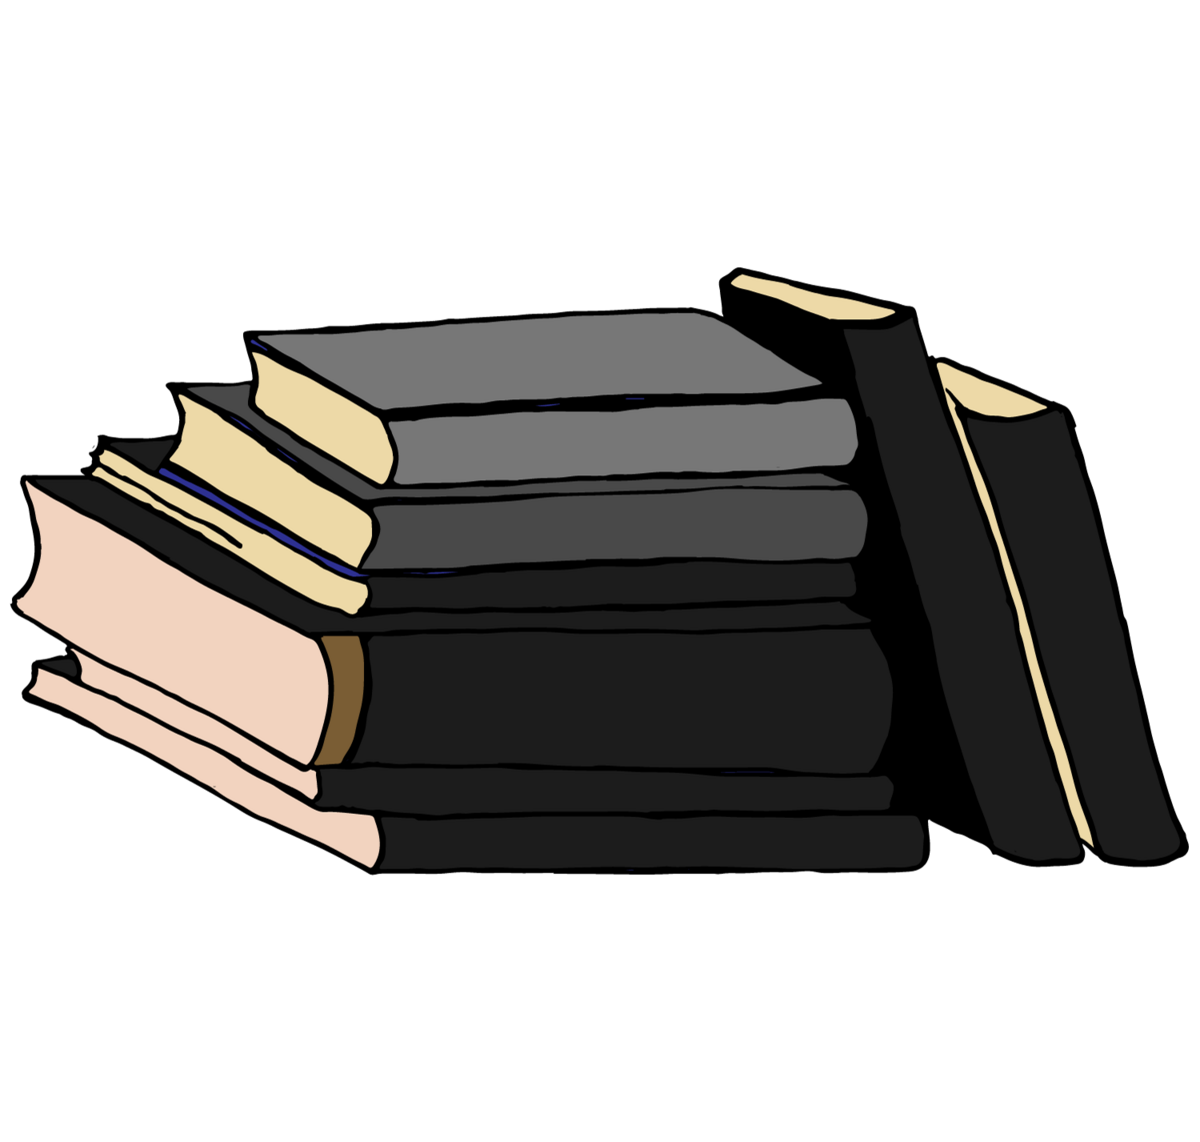 Book-stack-black